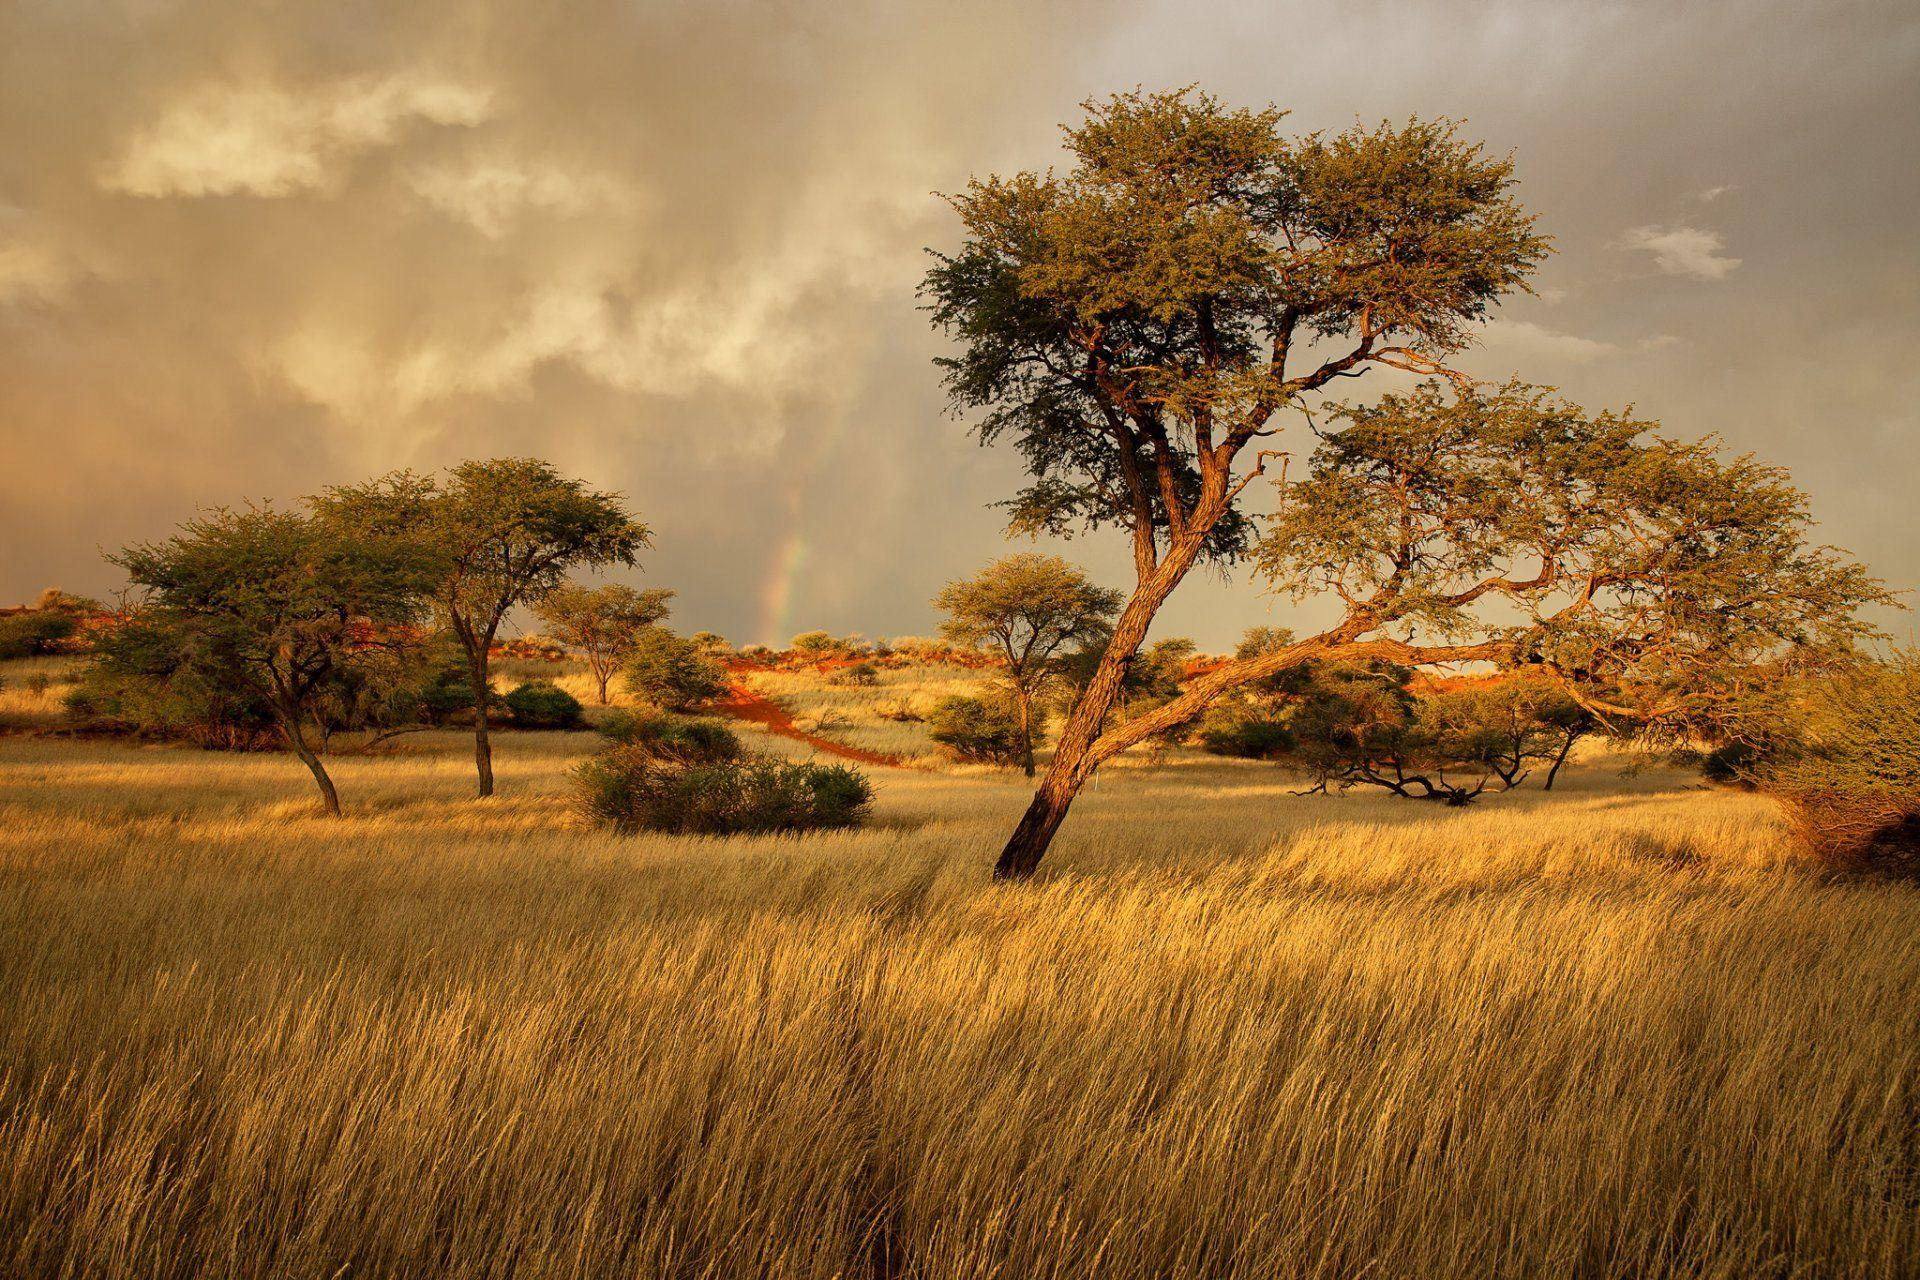 namibia africa savannah grass tree HD wallpaper